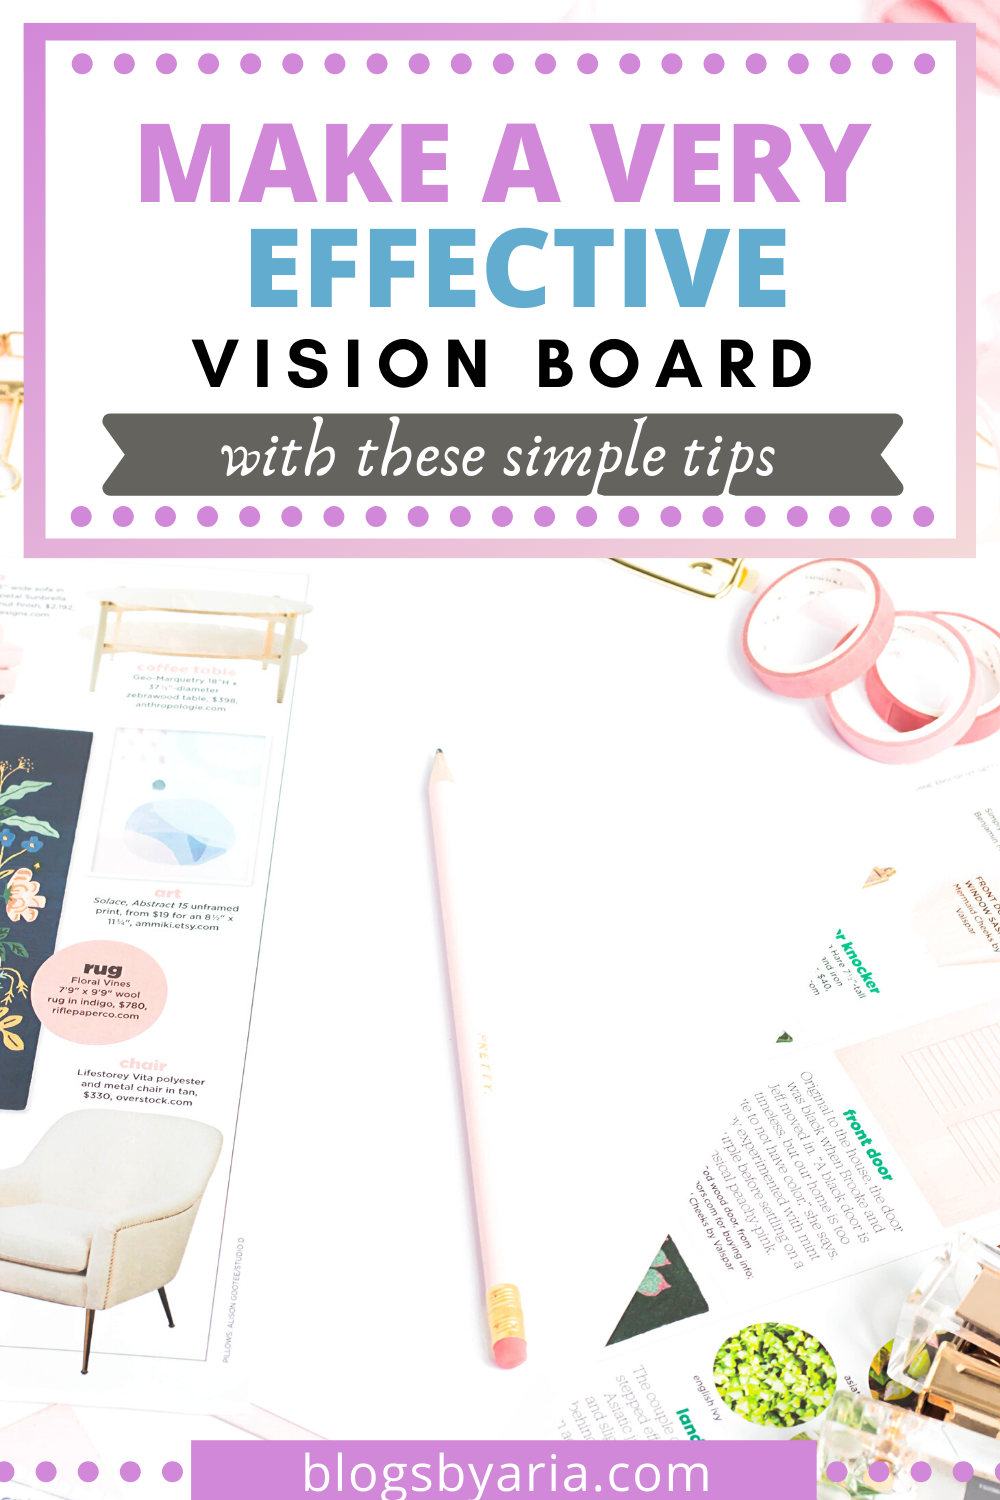 make a very effective vision board with these simple tips